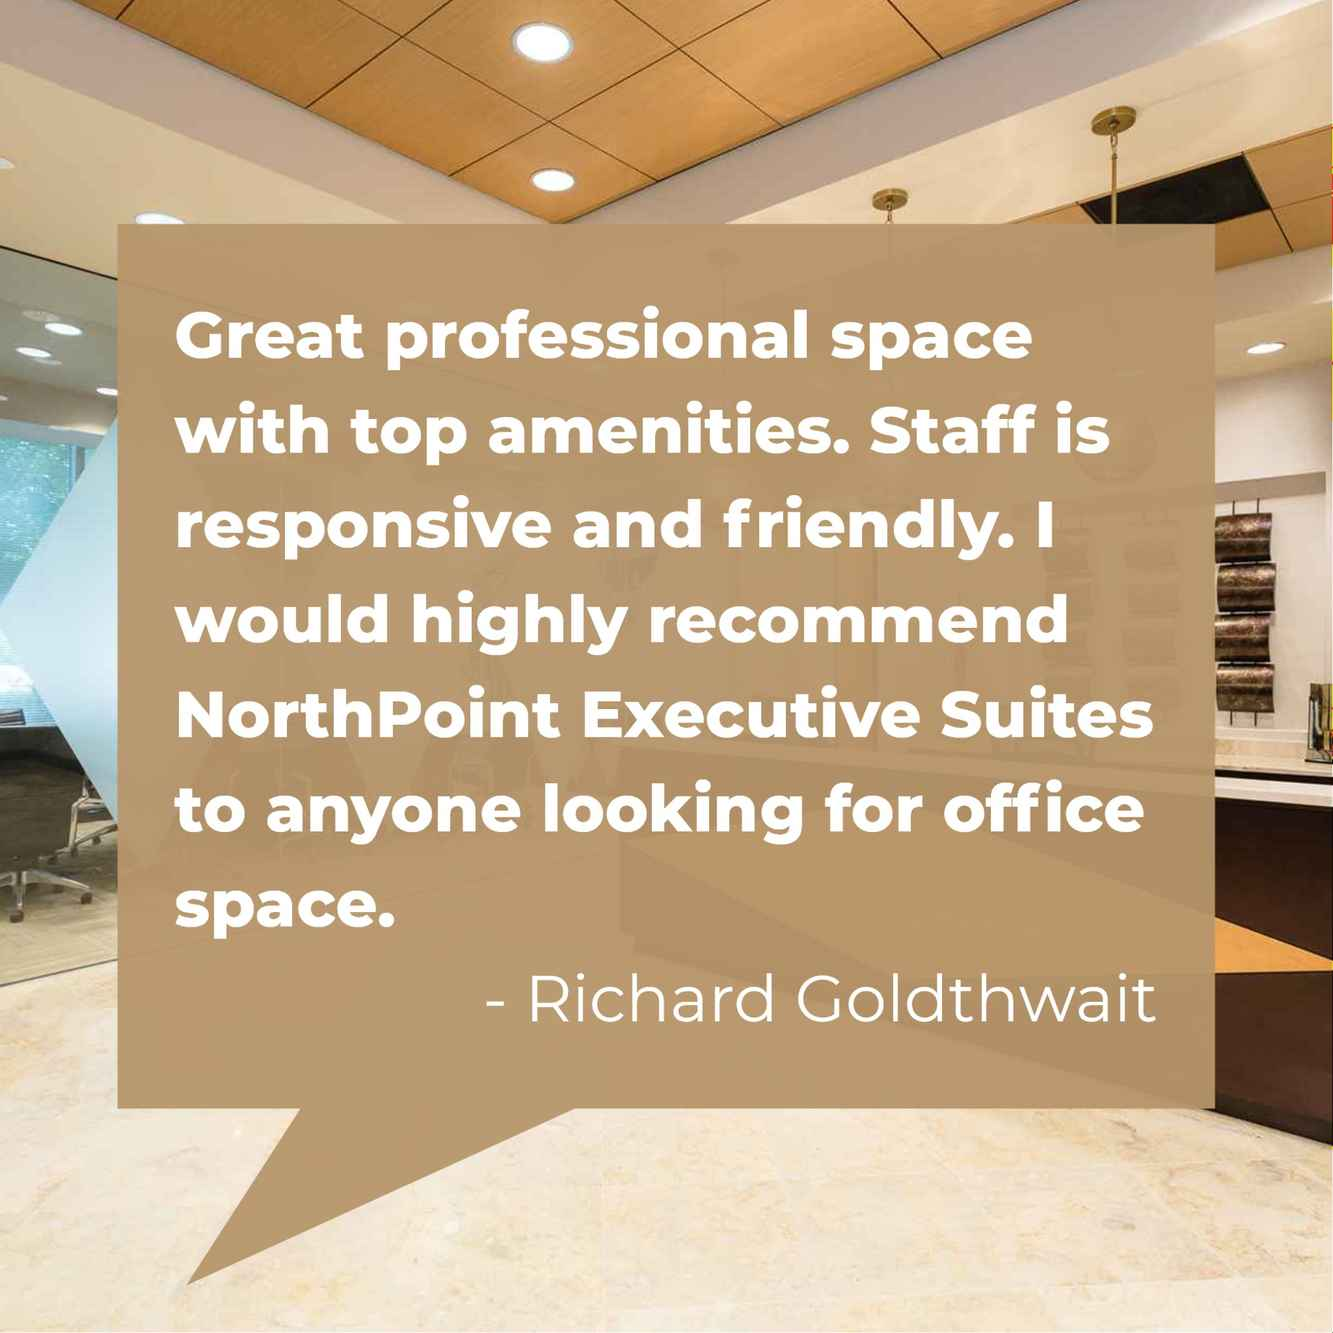 Richard Goldthwait shares his thoughts on NorthPoint Executive Suites.